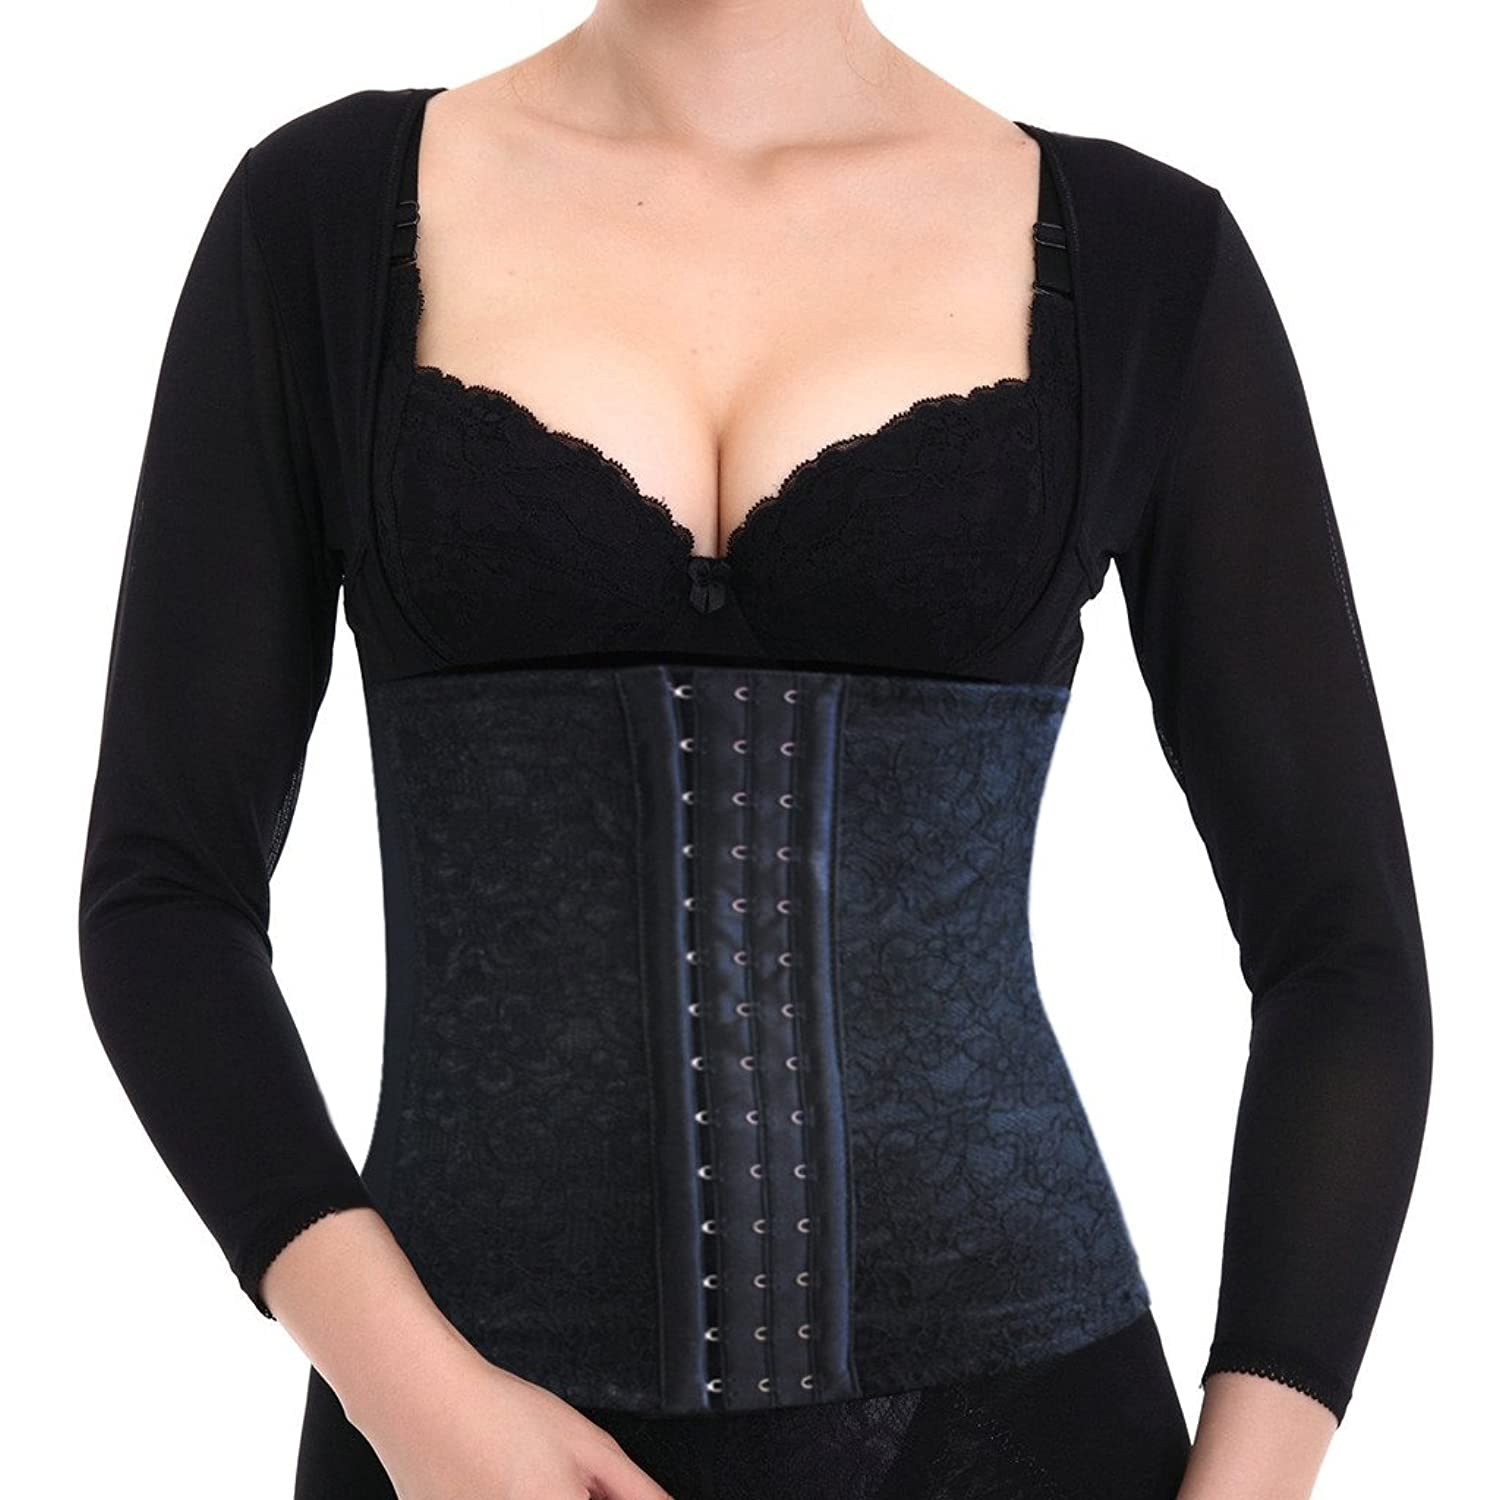 Waist Cincher,Toprime Body Shapewear Corset Cincher Trimmer Girdle More Color